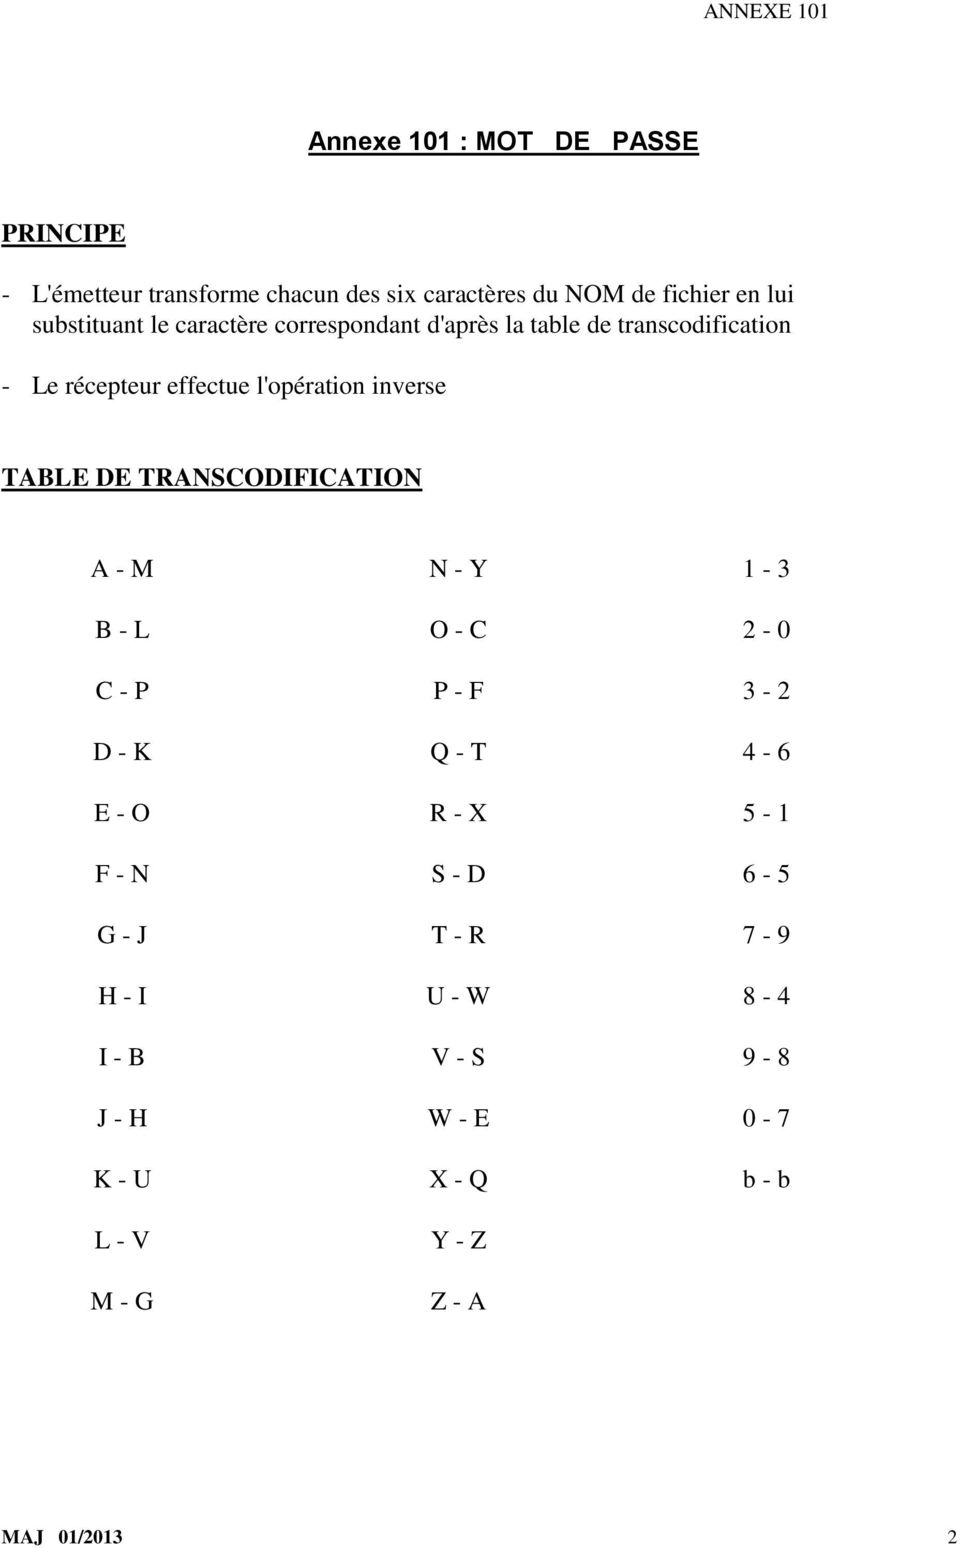 TABLE DE TRANSCODIFICATION A - M N - Y 1-3 B - L O - C 2-0 C - P P - F 3-2 D - K Q - T 4-6 E - O R - X 5-1 F - N S - D